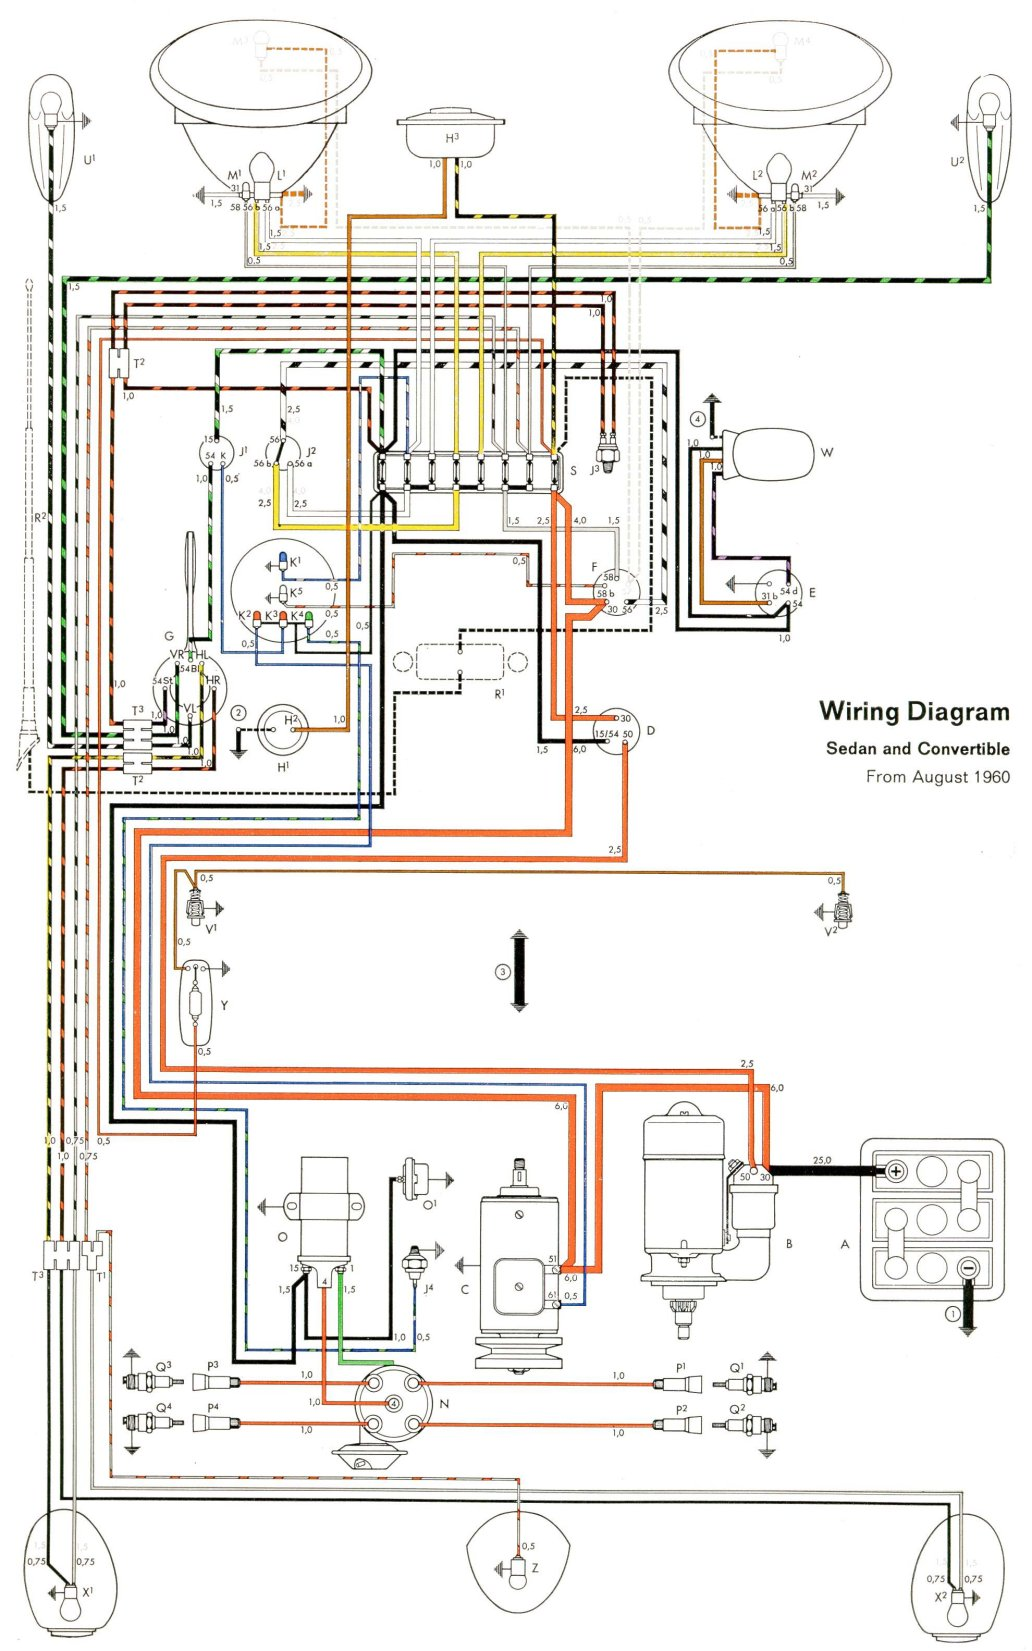 thesamba com type 1 wiring diagrams vw beetle front suspension diagram 1969 vw beetle wiring diagram #4